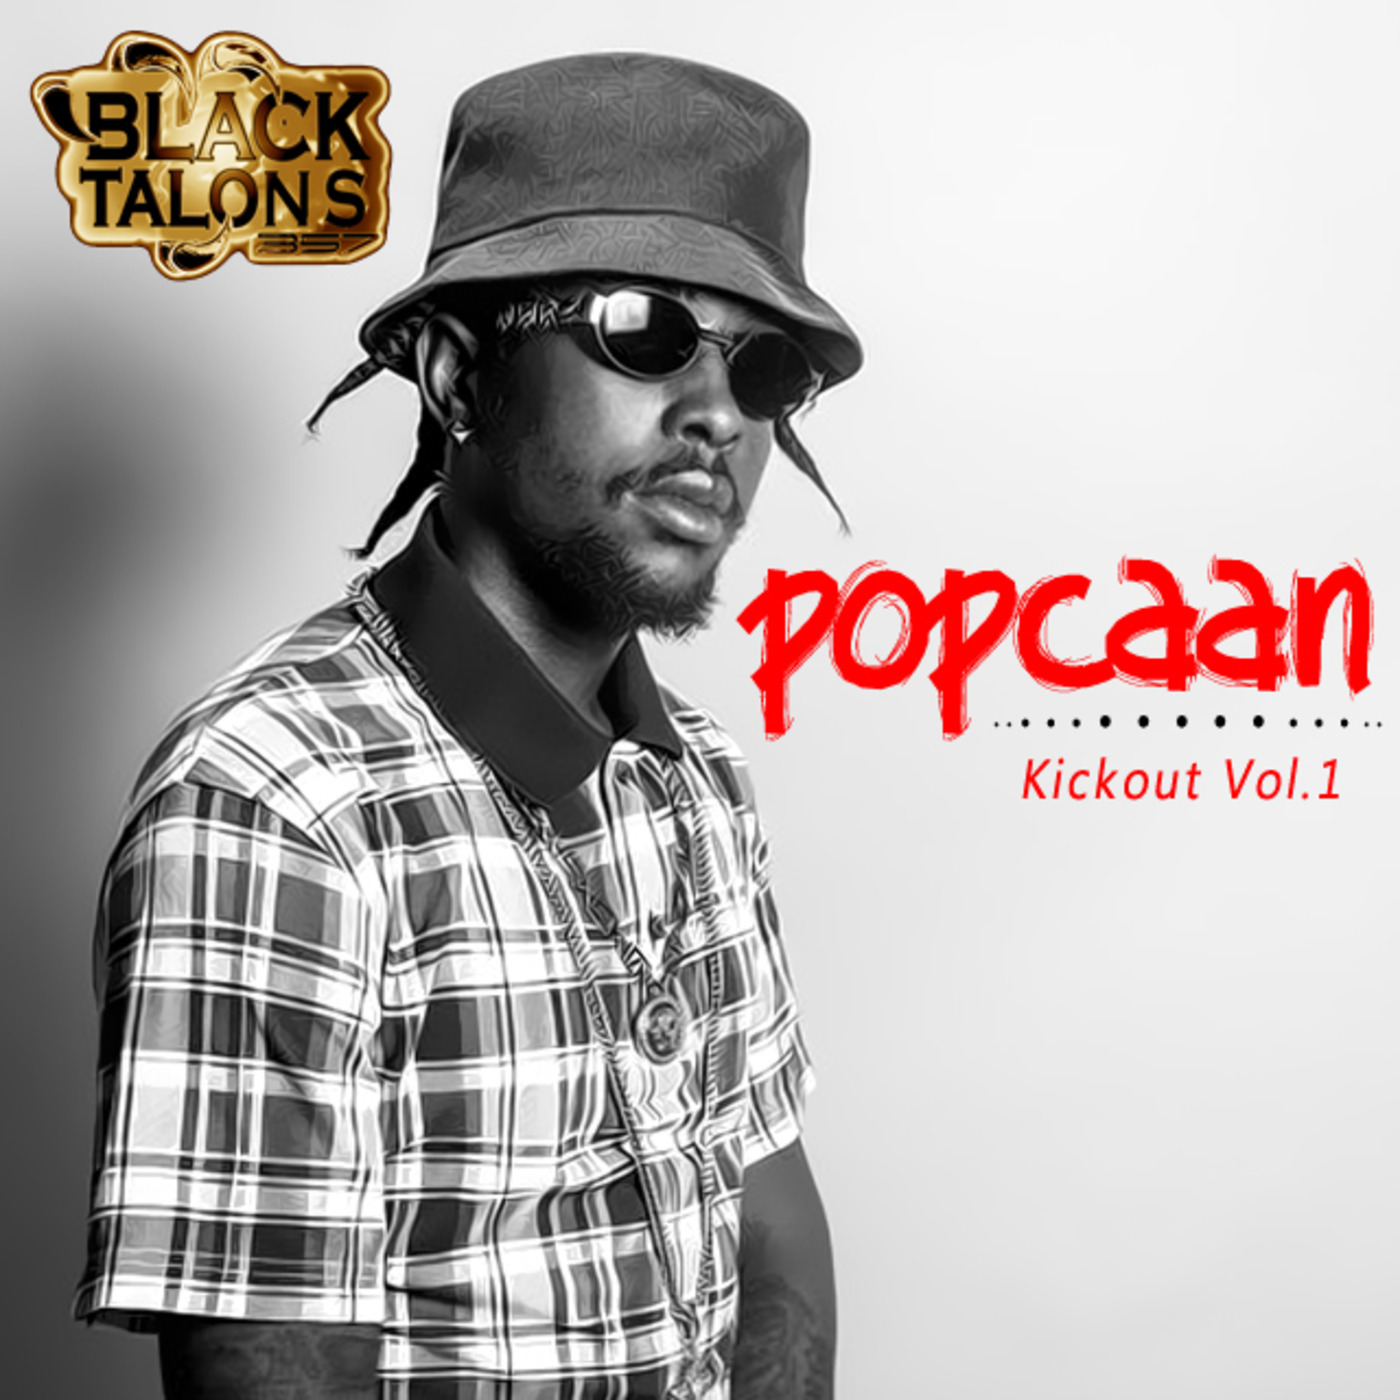 BLACK TALONS 357 Presents POPCAAN - KICKOUT (Part 1) Black Talons